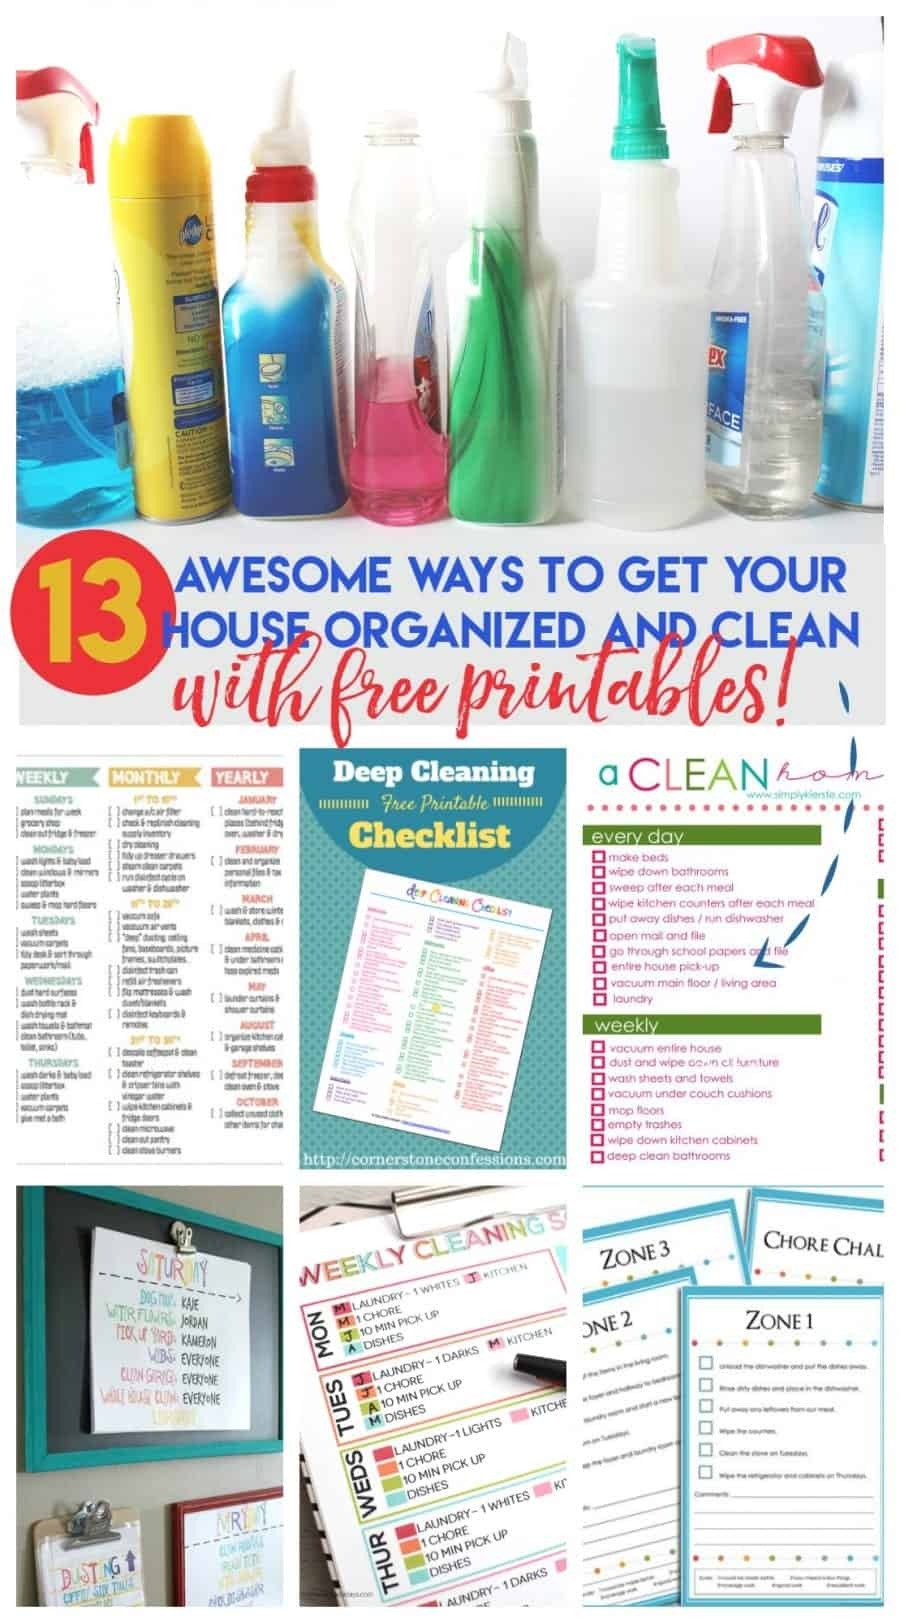 13 ways to get your house organized, clean and to make you feel like you have your crap together. (with free printables!)